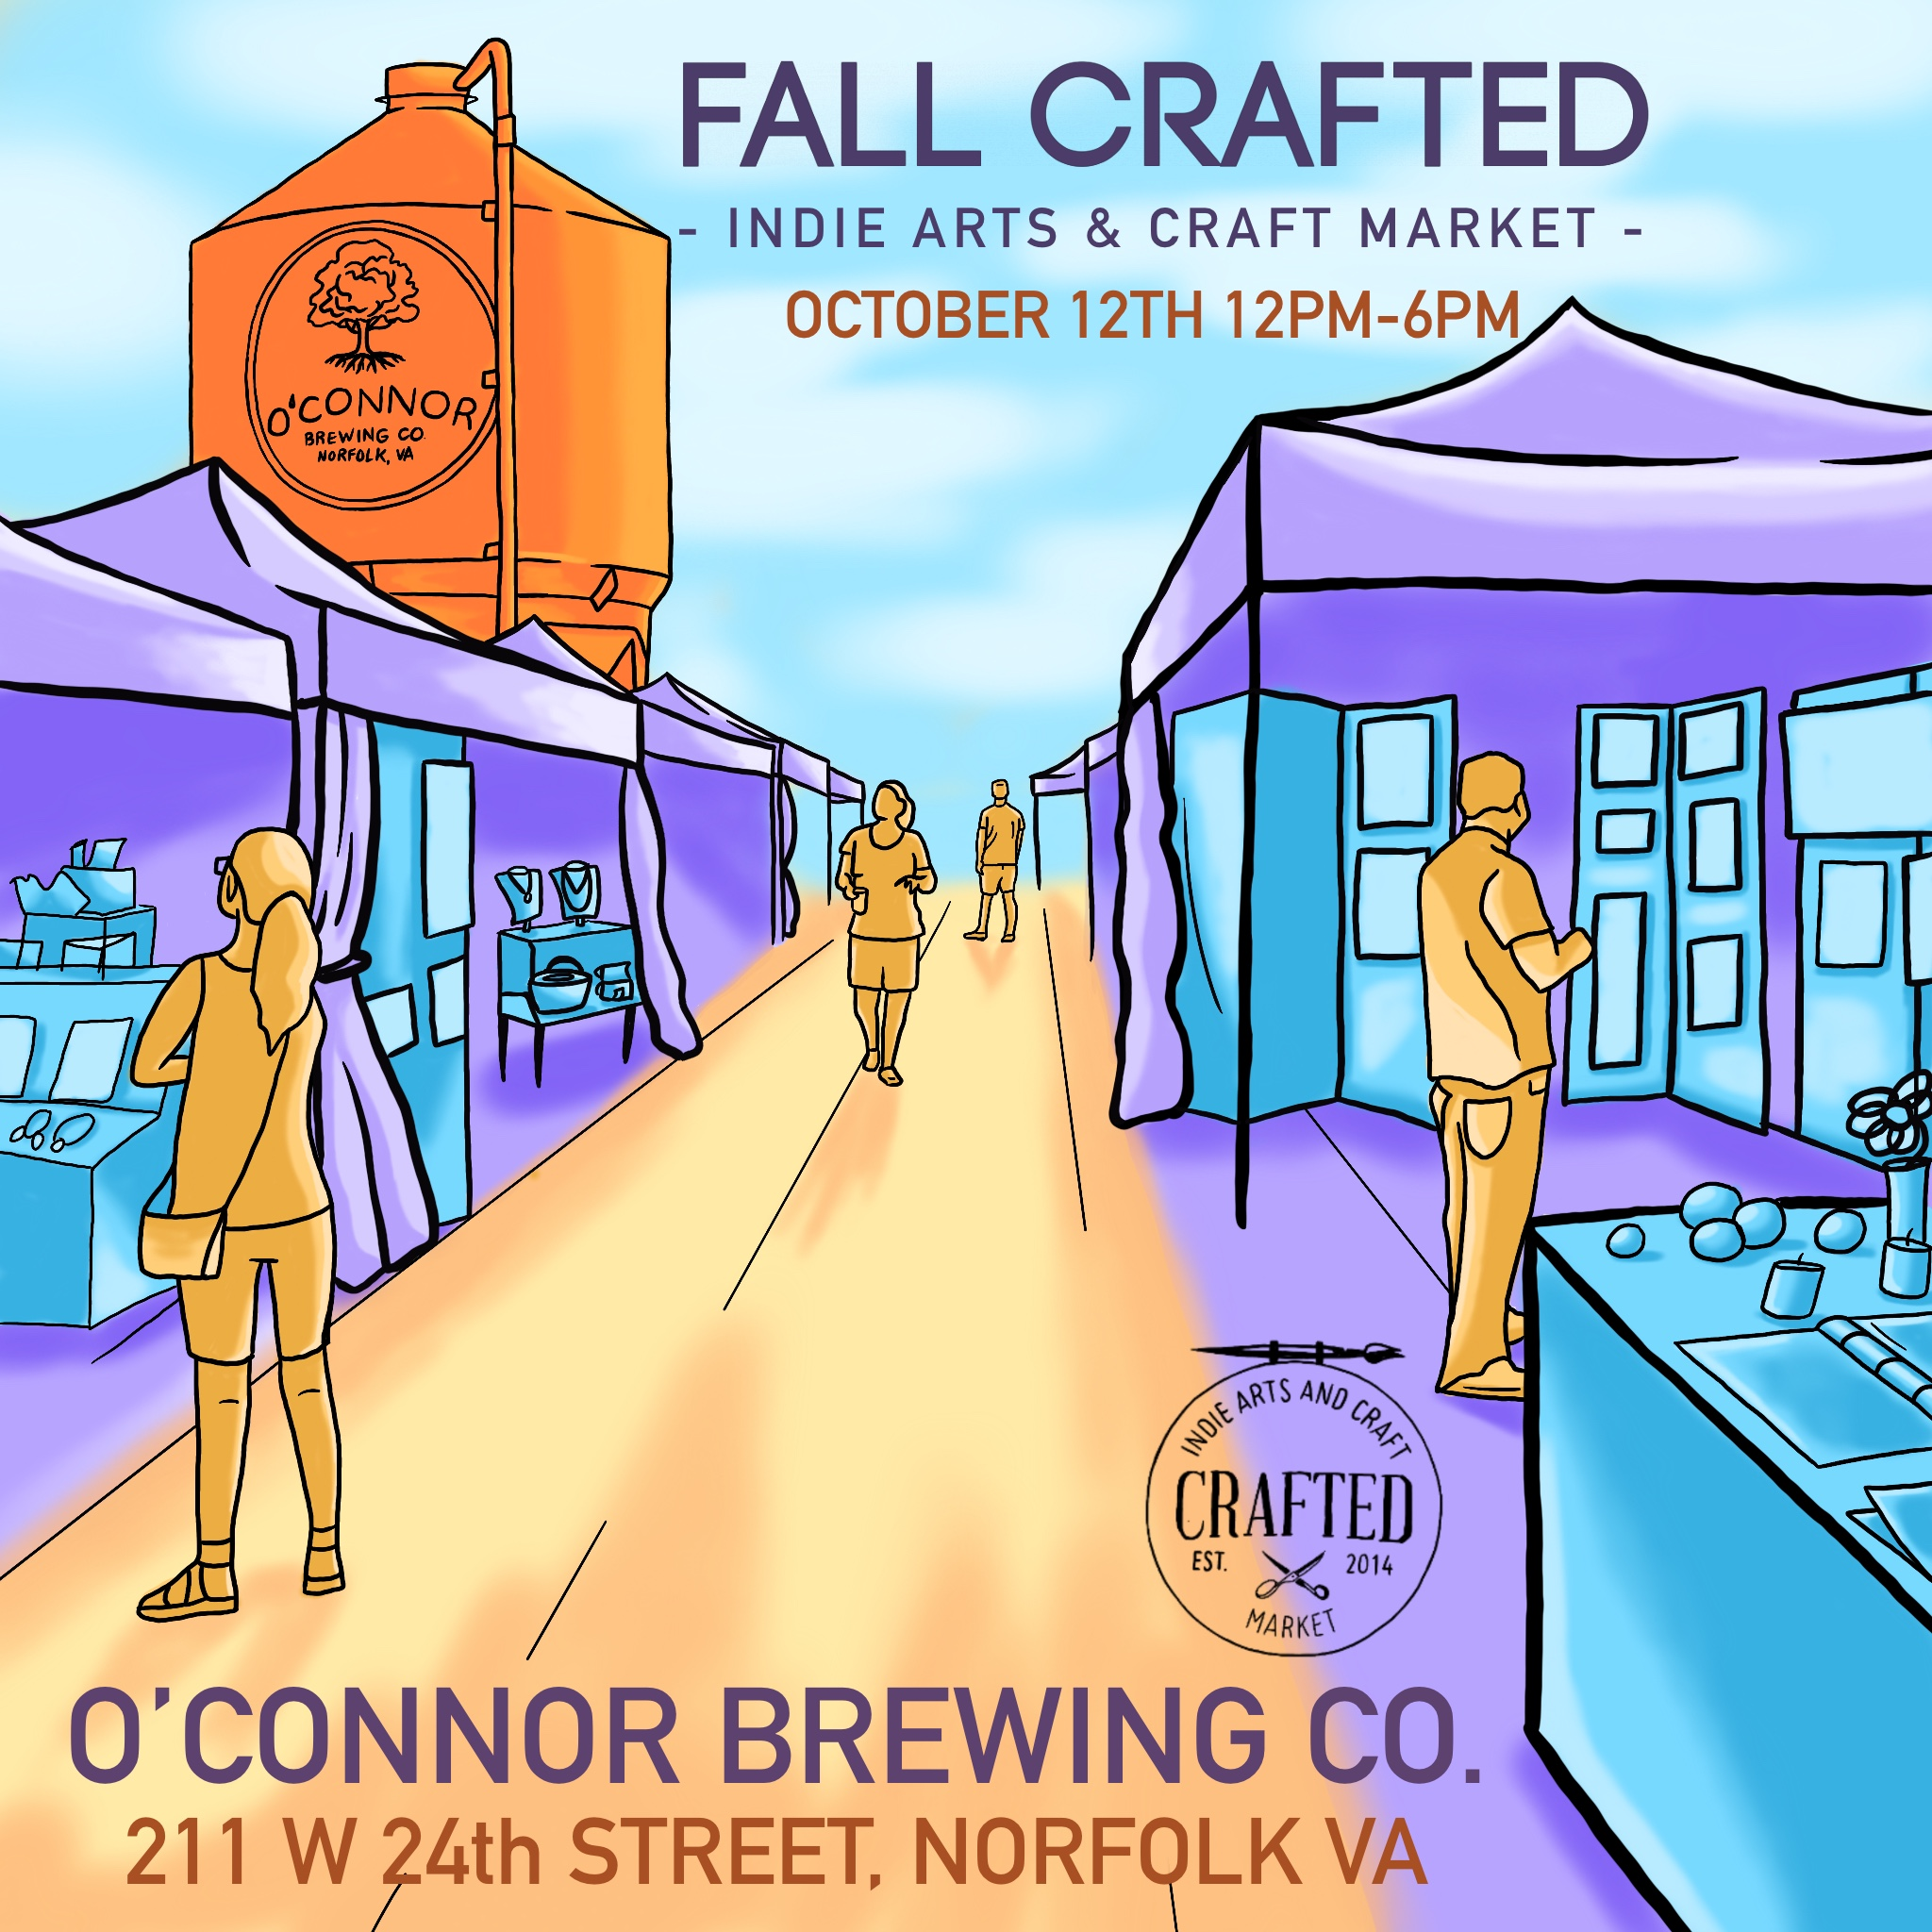 Fall Crafted Oct 19